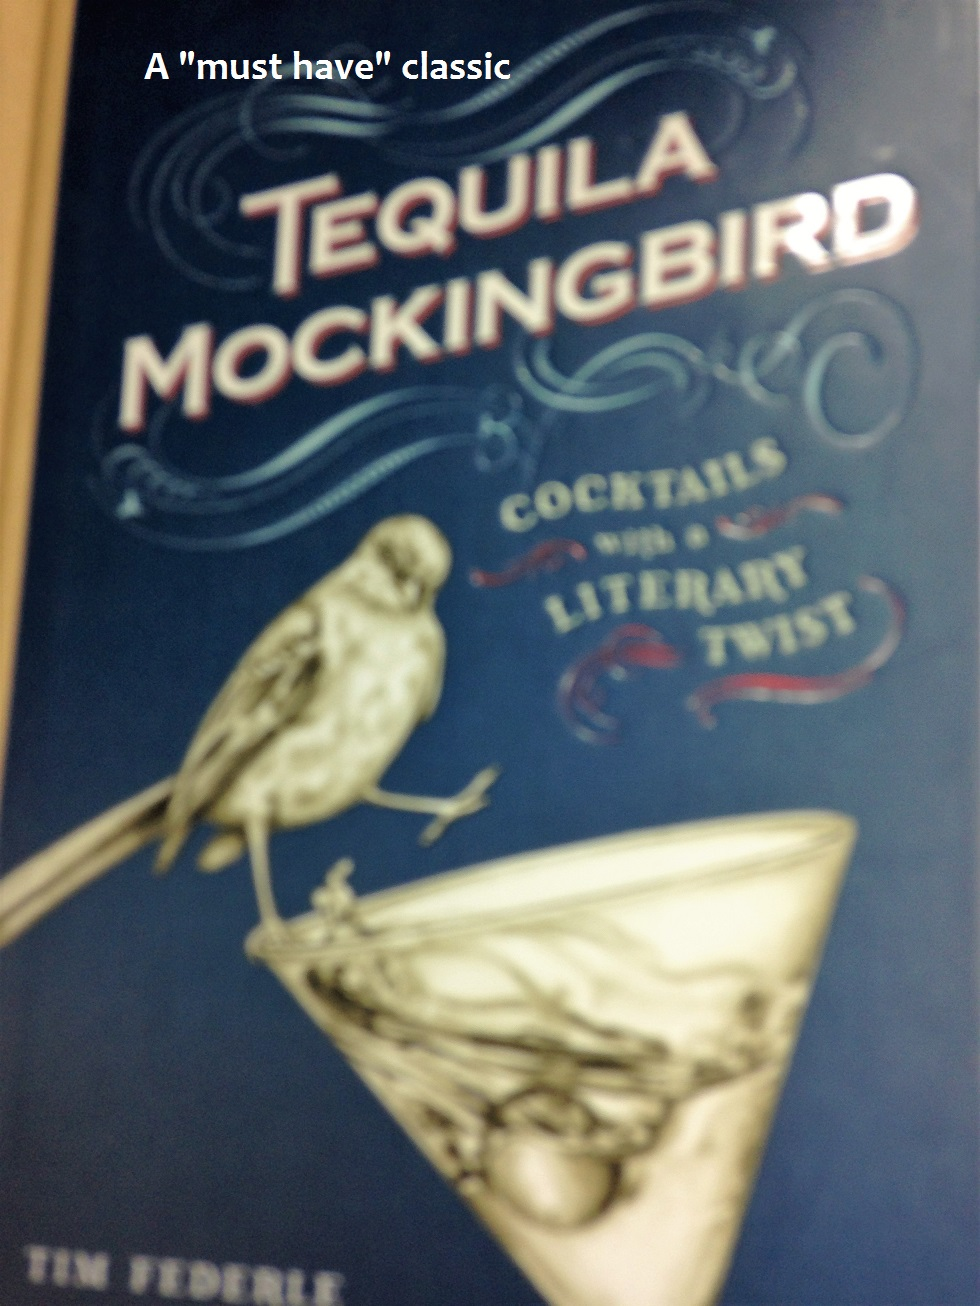 t Mockingbird.JPG